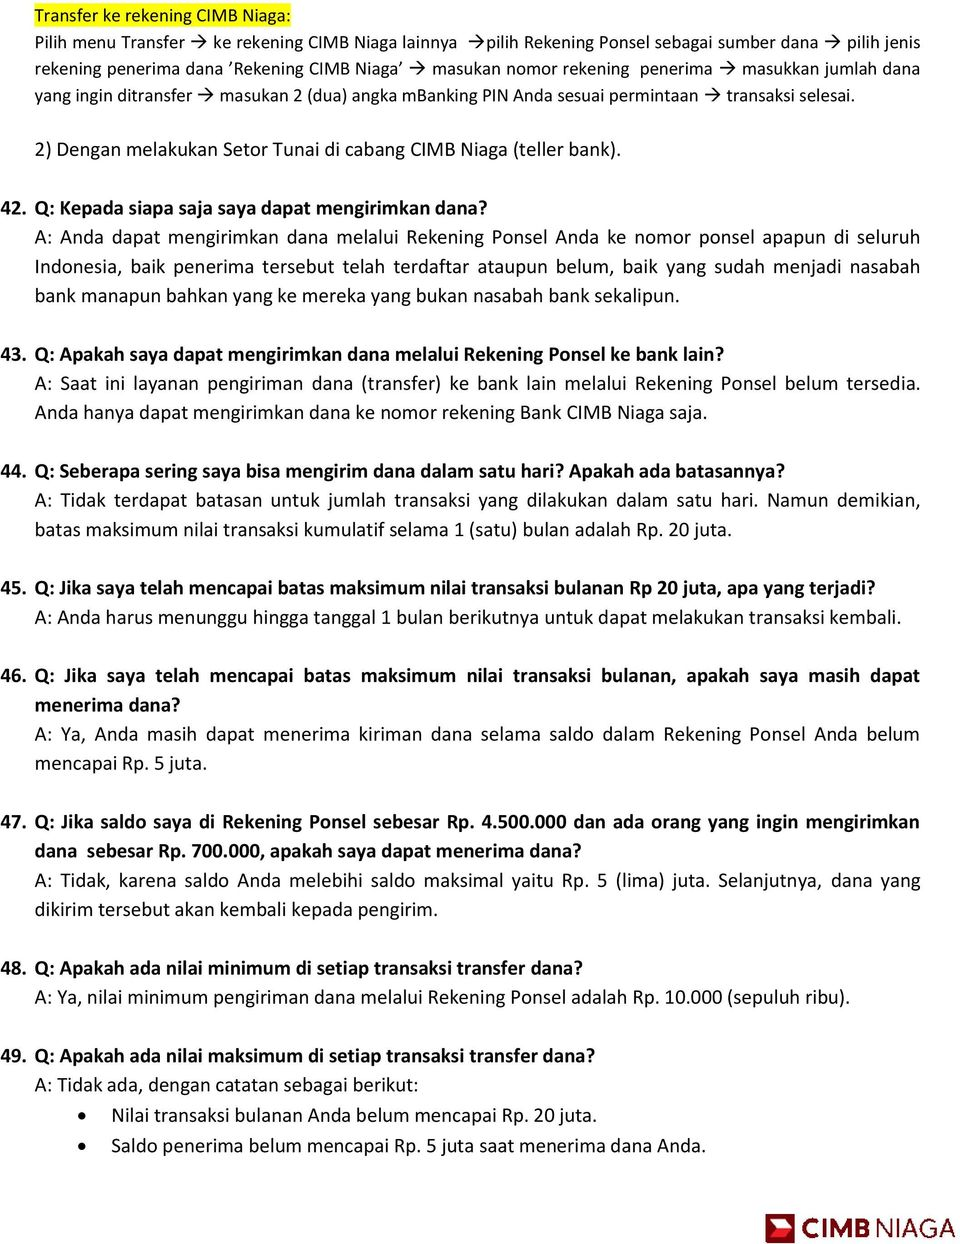 Frequently Asked Questions Faq Rekening Ponsel Pdf Free Download